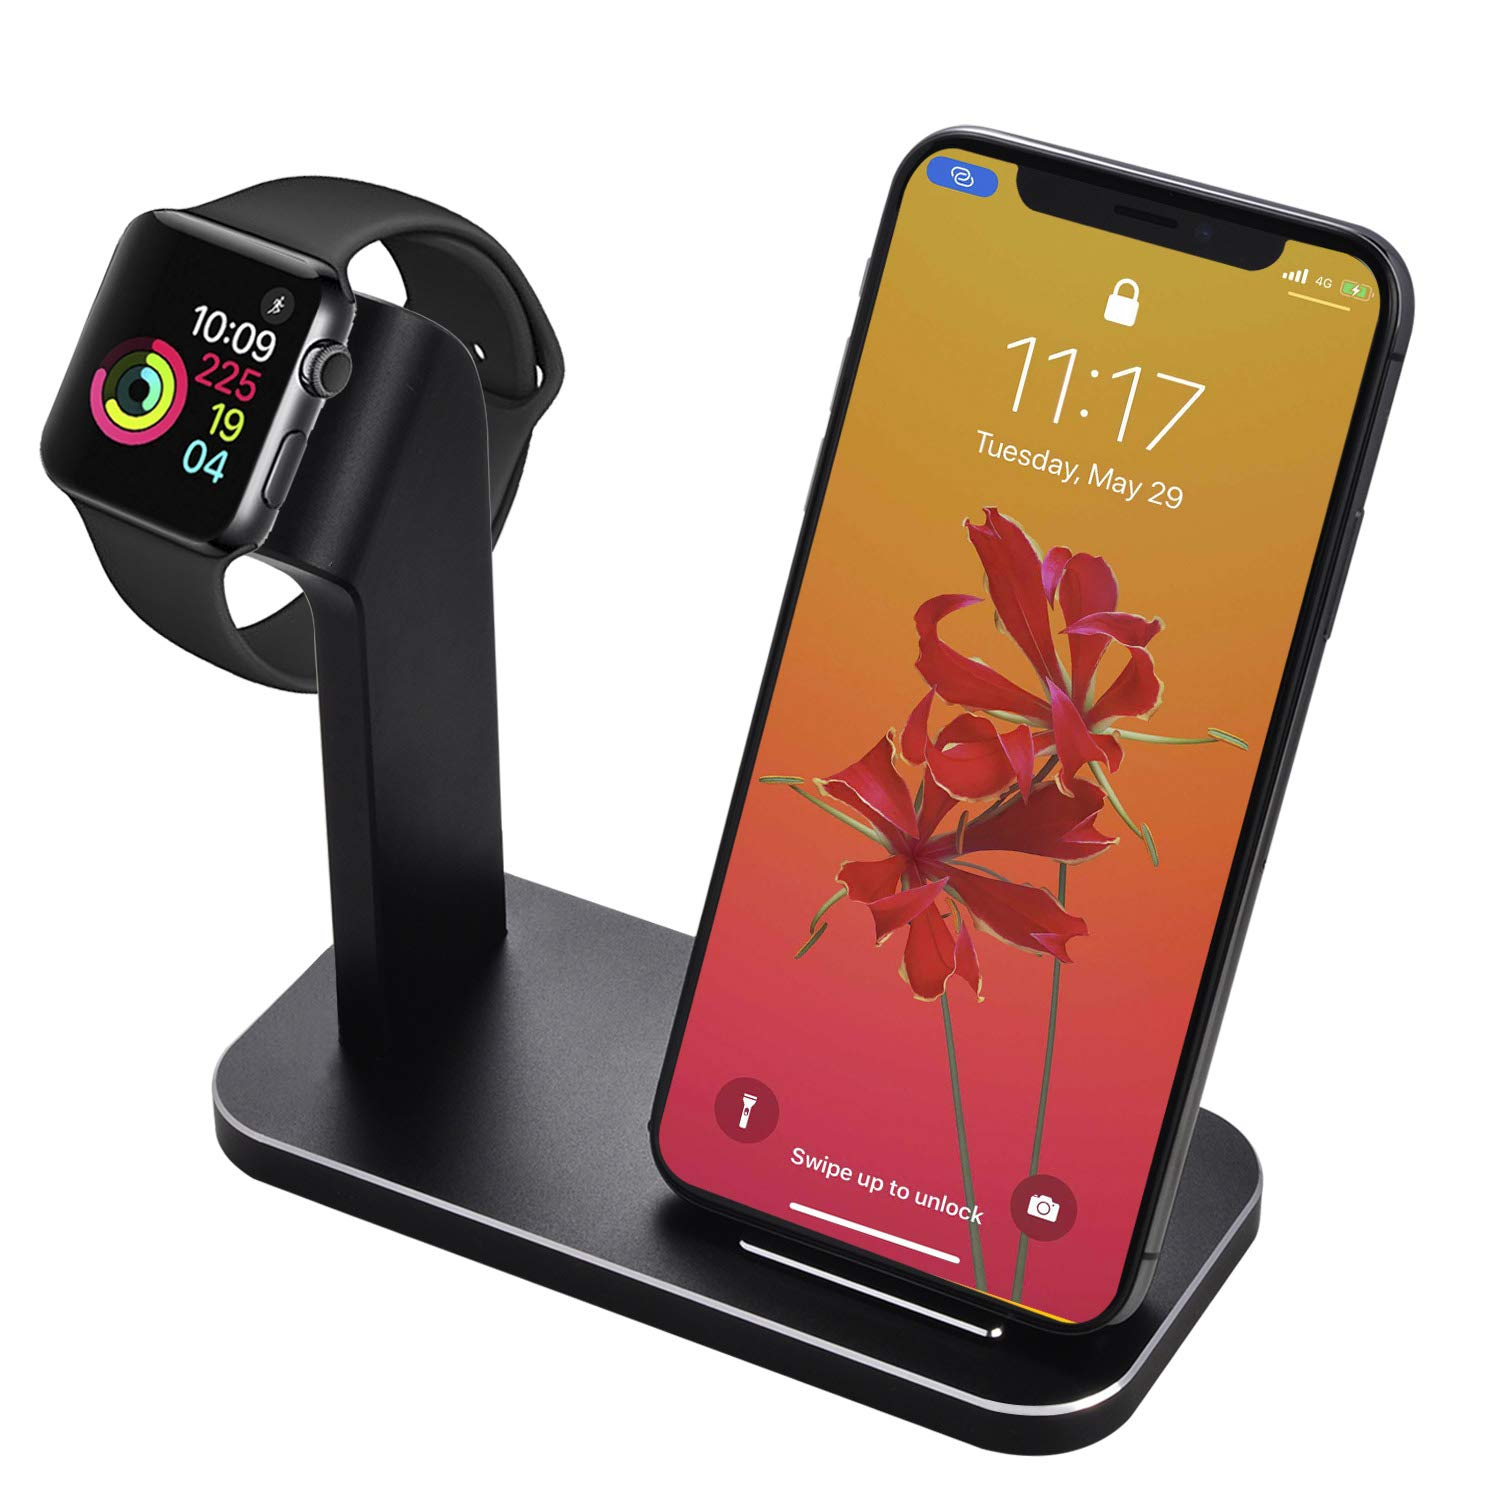 BNCHI 2 in 1 Aluminum Alloy Phone Wireless Charger Stand & Charging Station Compatible Watch Series 5/4/3/2/1/Phone11/11pro/X/Xs/Xs MAX/8 Plus/8 (Black) by BNCHI